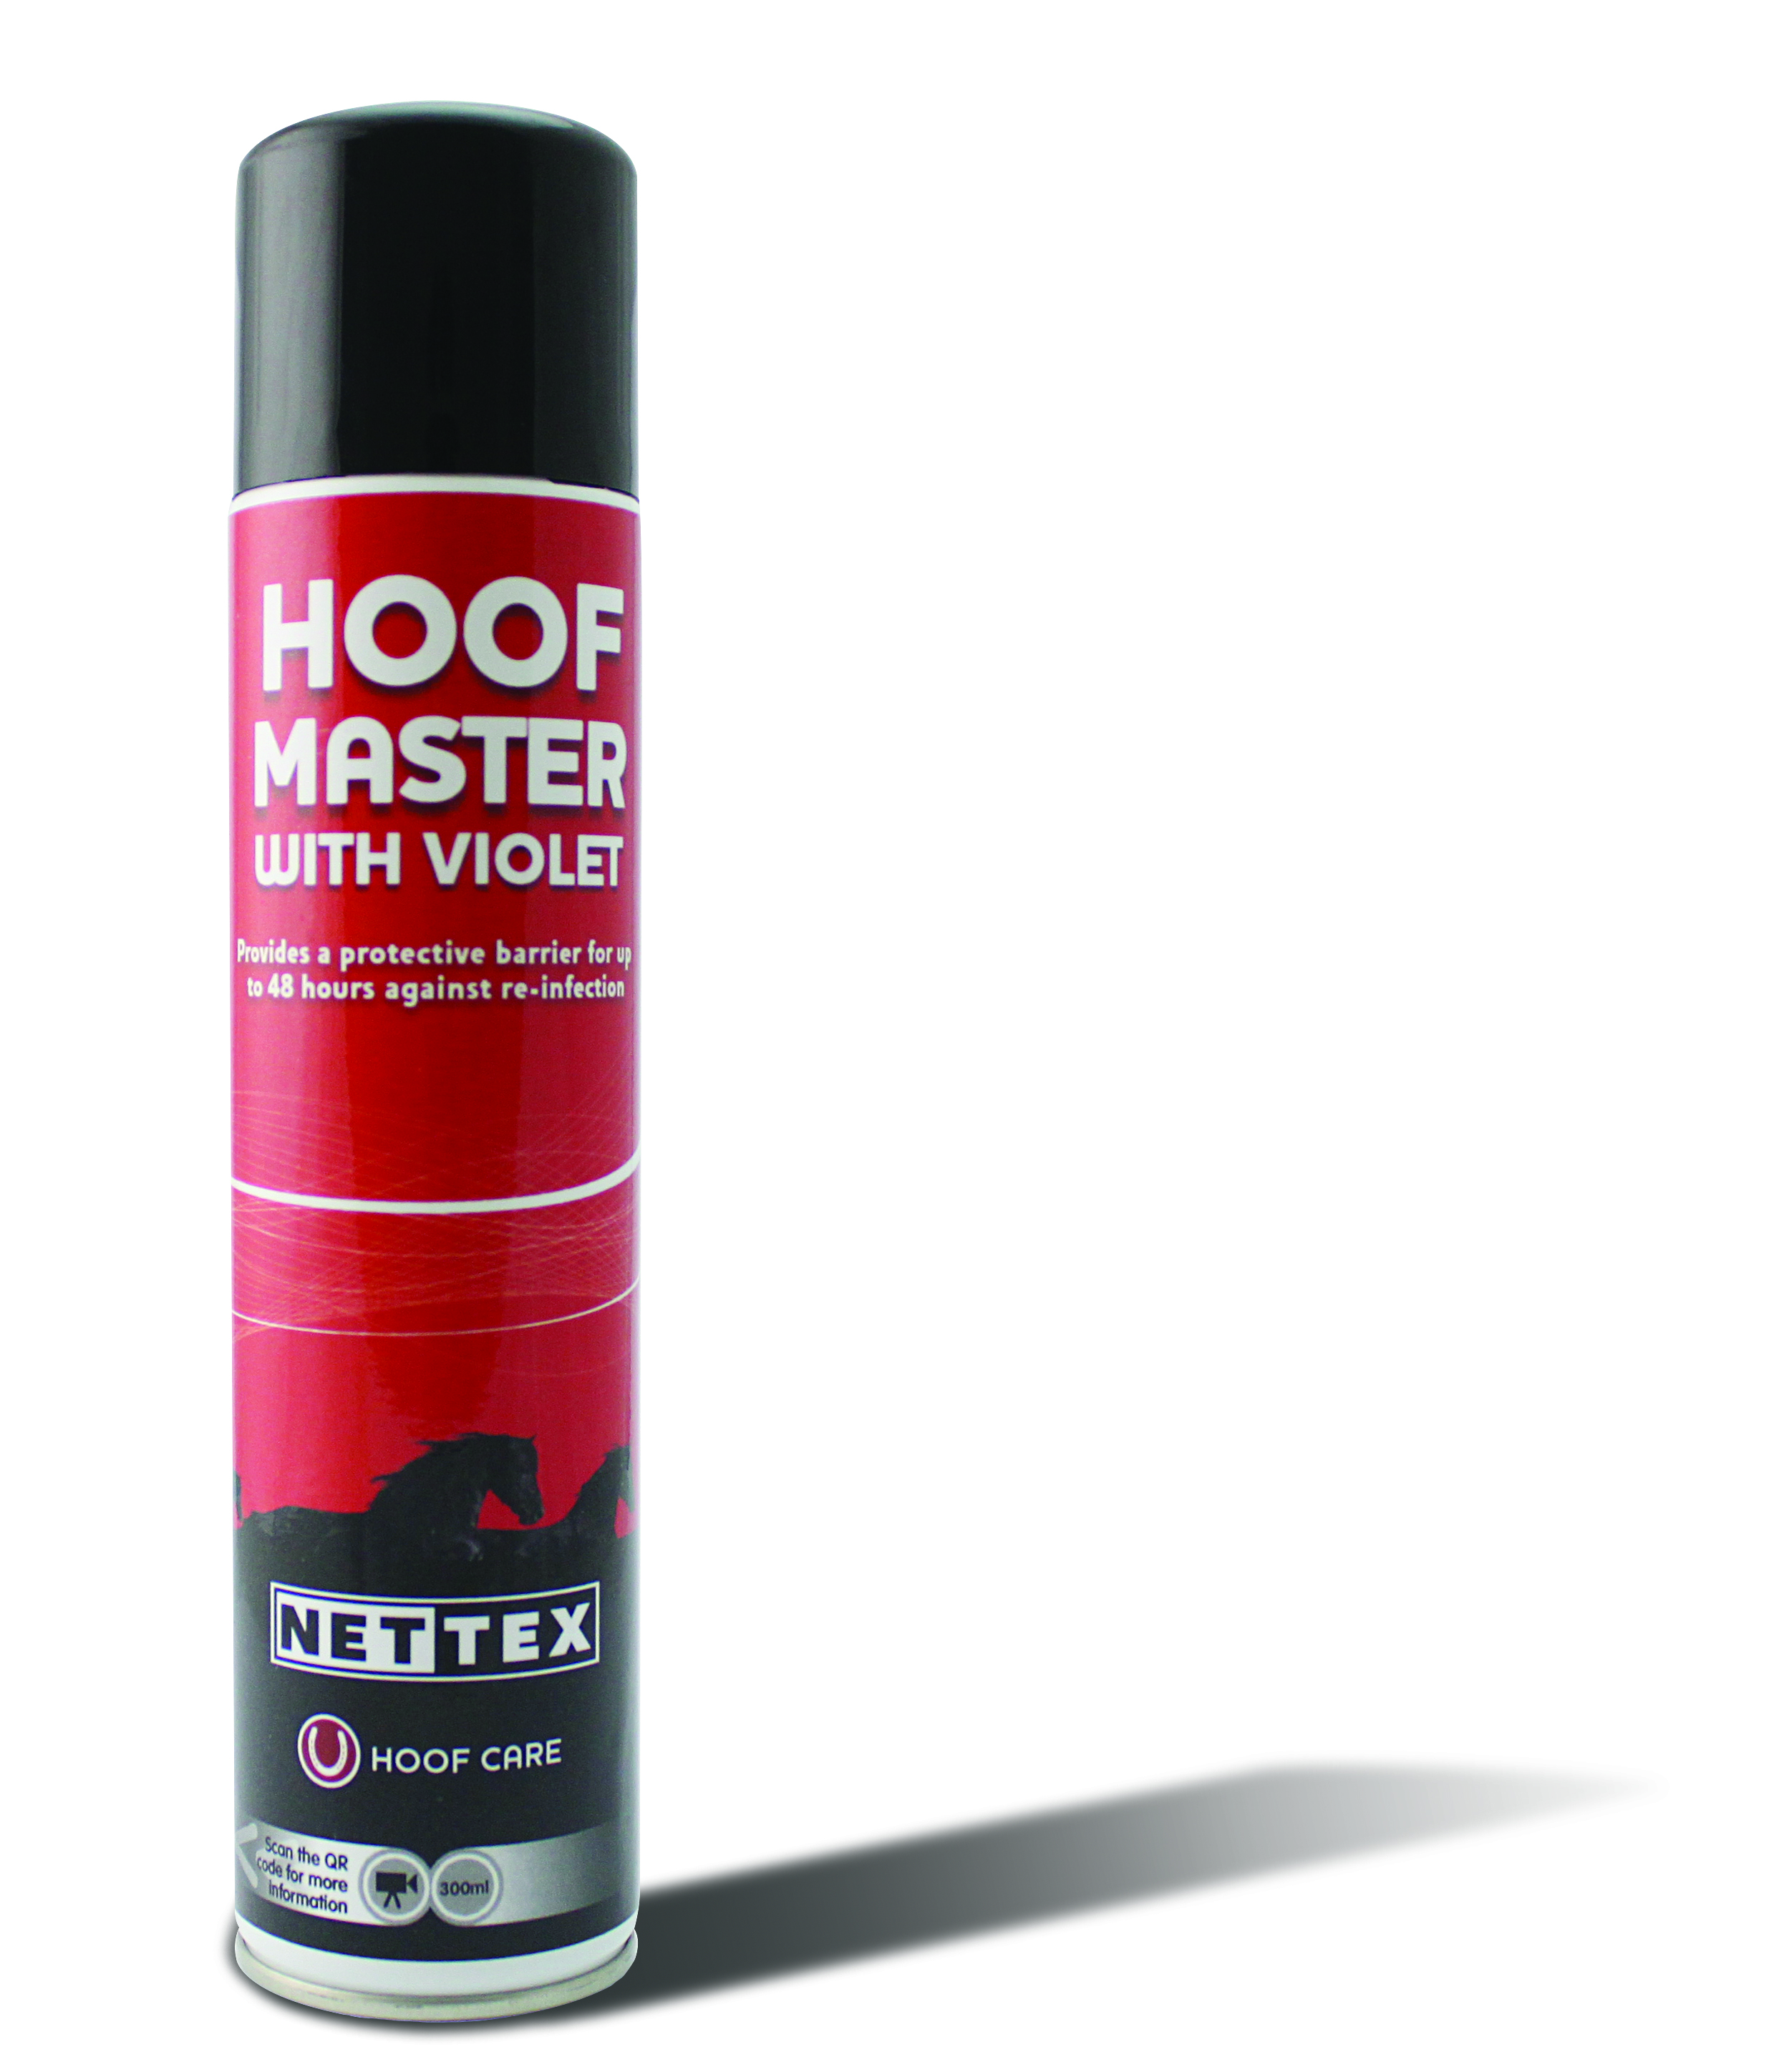 Net-Tex Hoof Master with Violet for Horses